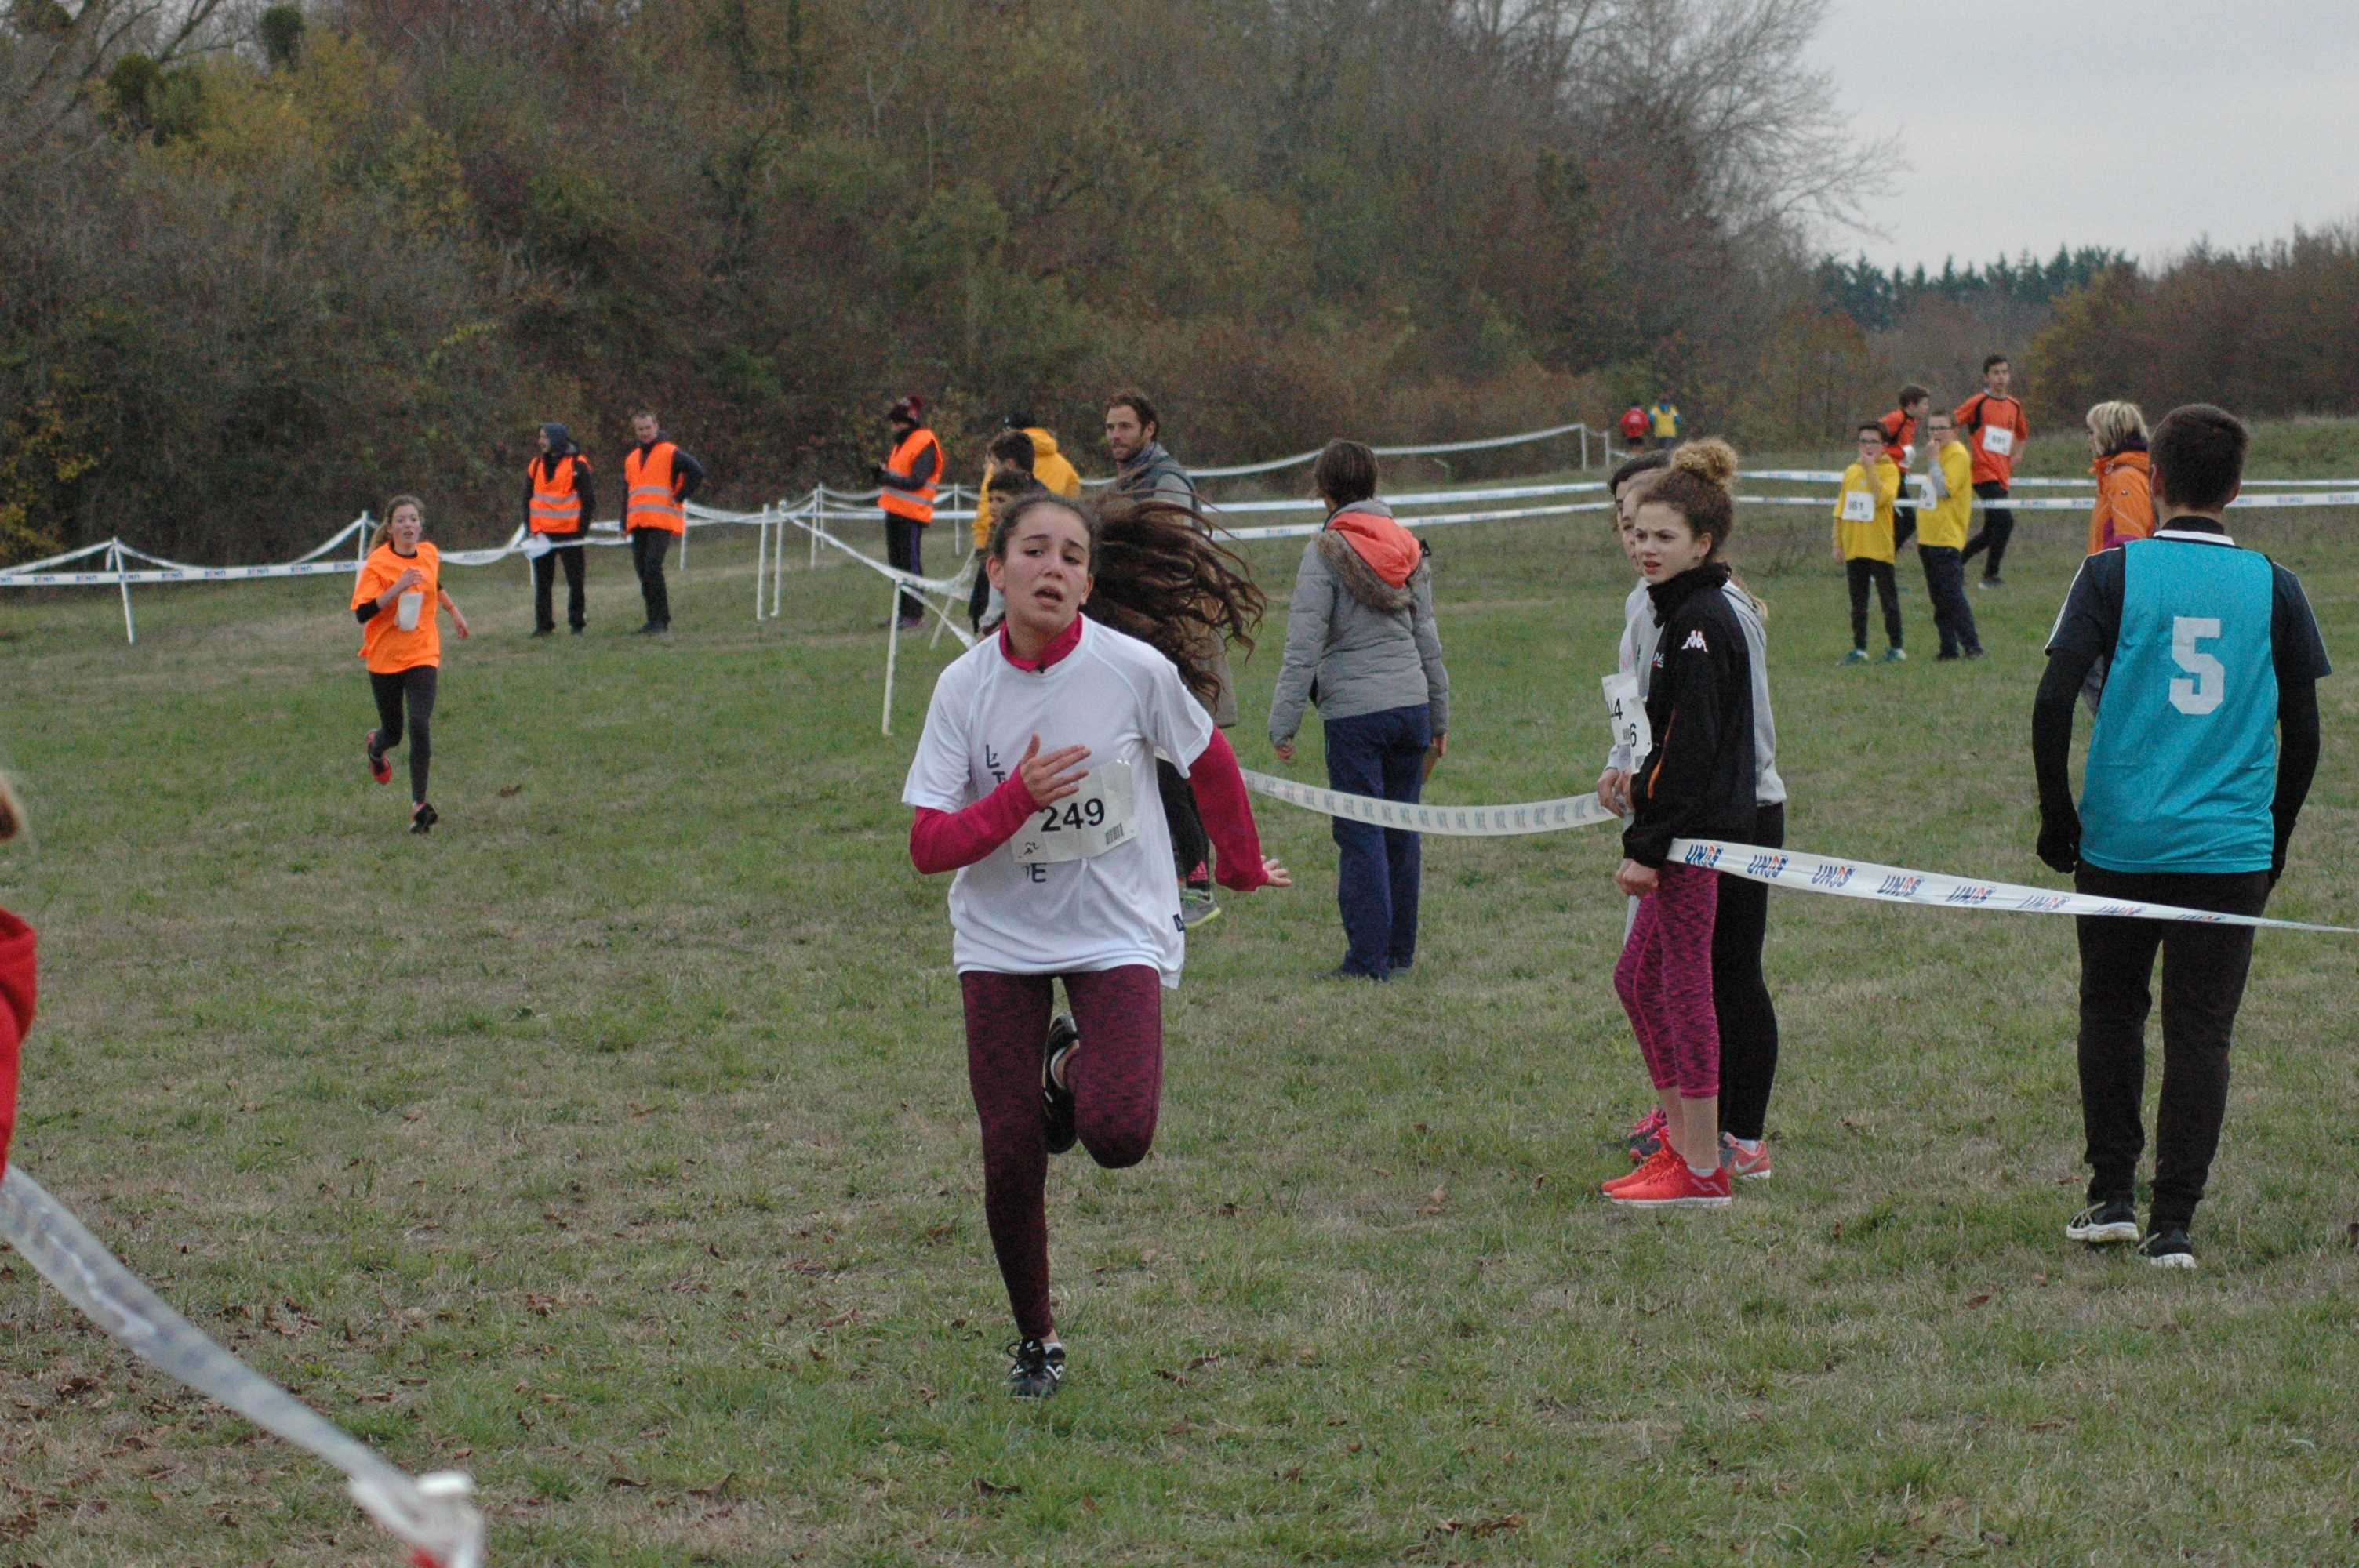 Championnats départementaux cross-country 21/11/2018